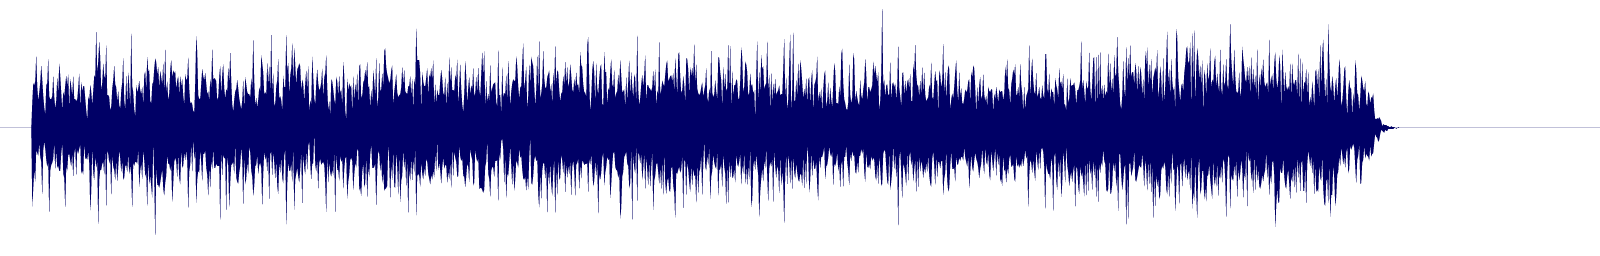 waveform of track #154311